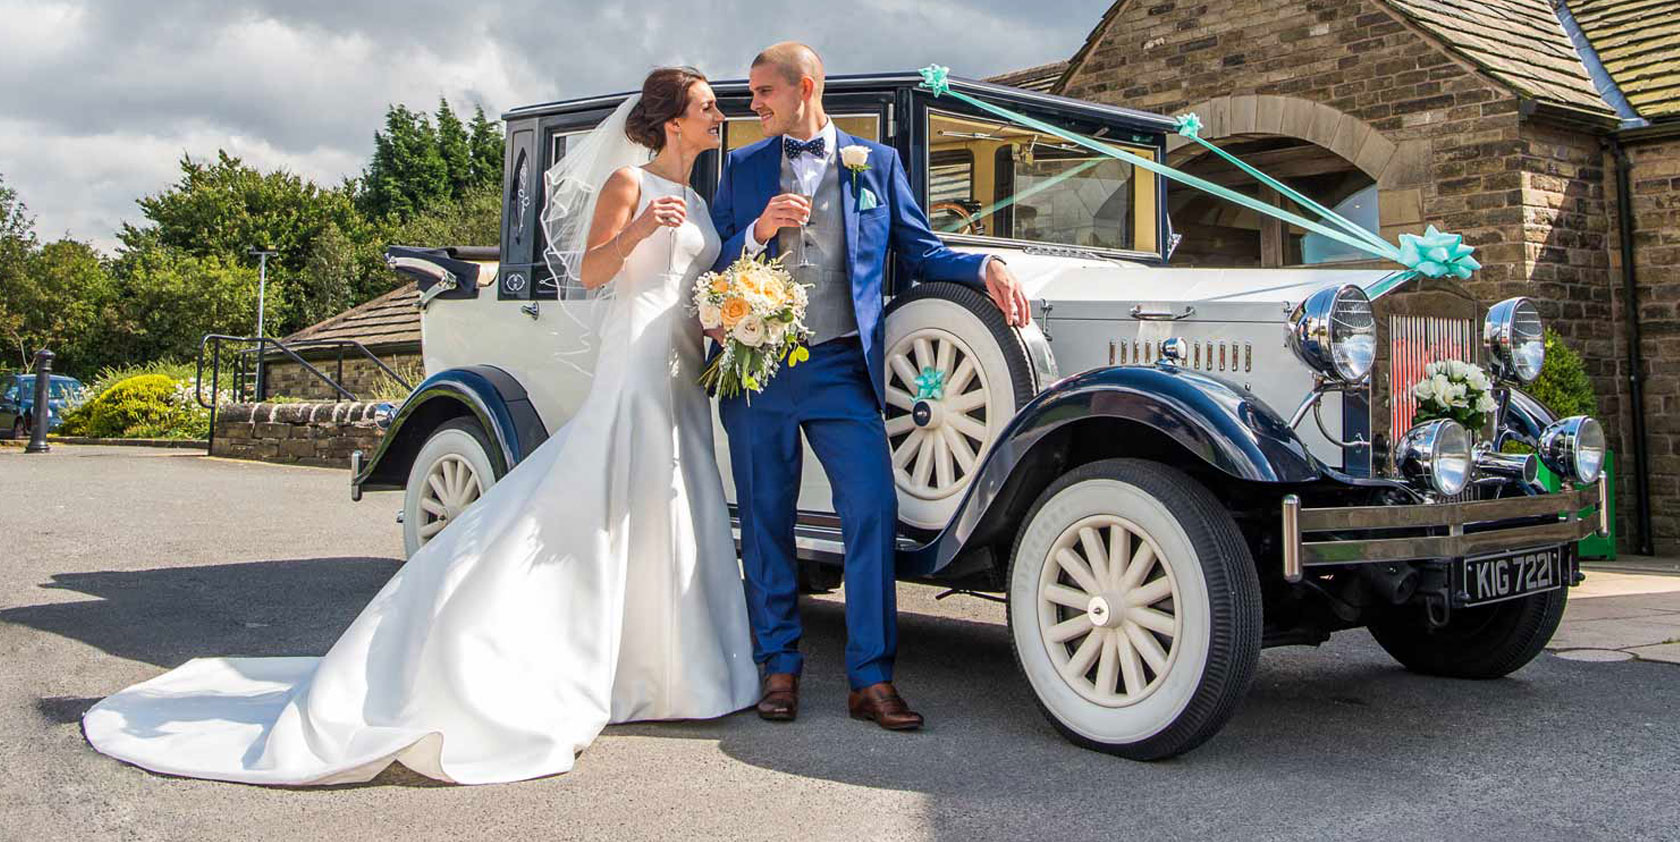 Wedding Car Packages Champaneri Cars Chauffeur Service Wedding Cars Leicestershire